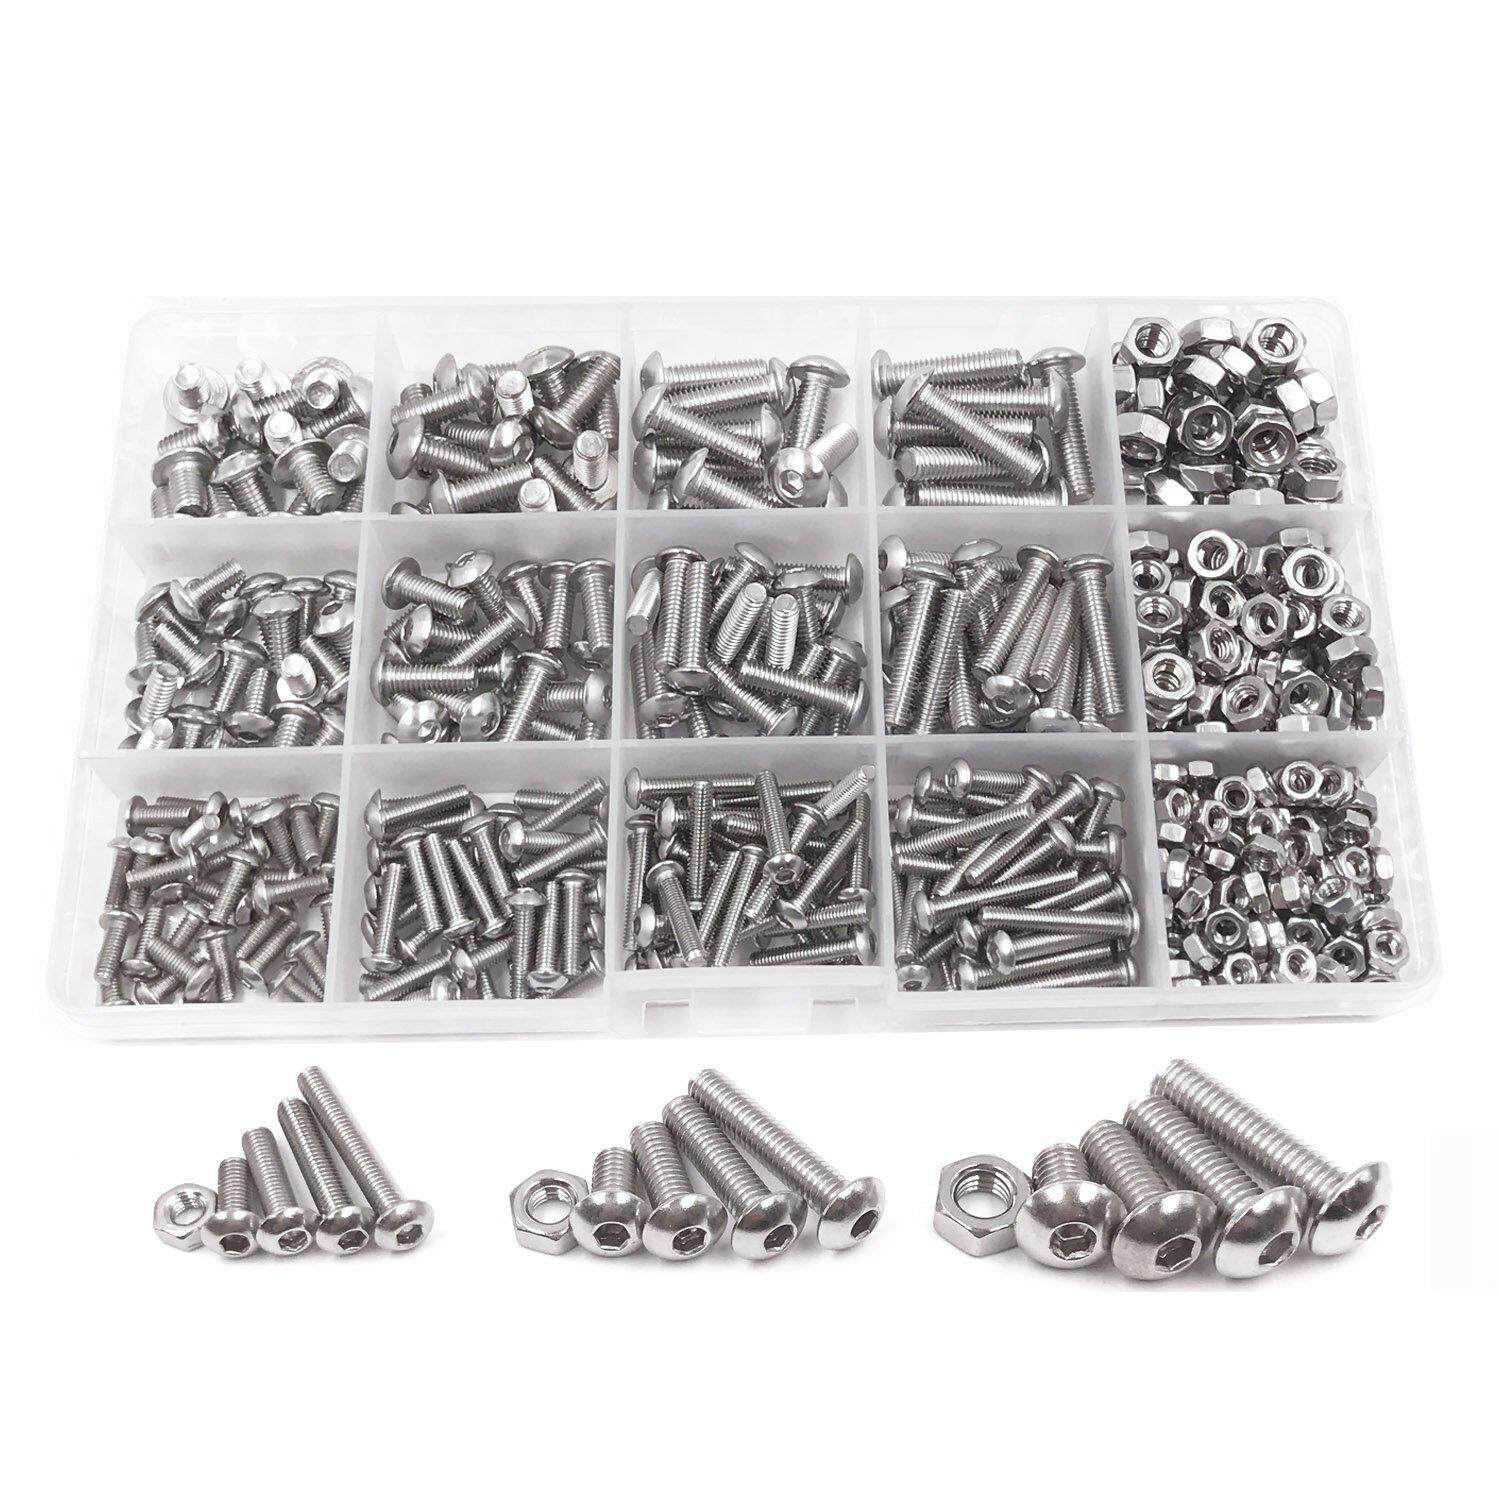 500pcs M3 M4 M5 A2 Stainless Steel ISO7380 Button Head Hex Bolts Hexagon Socket Screws With Nuts Assortment Kit